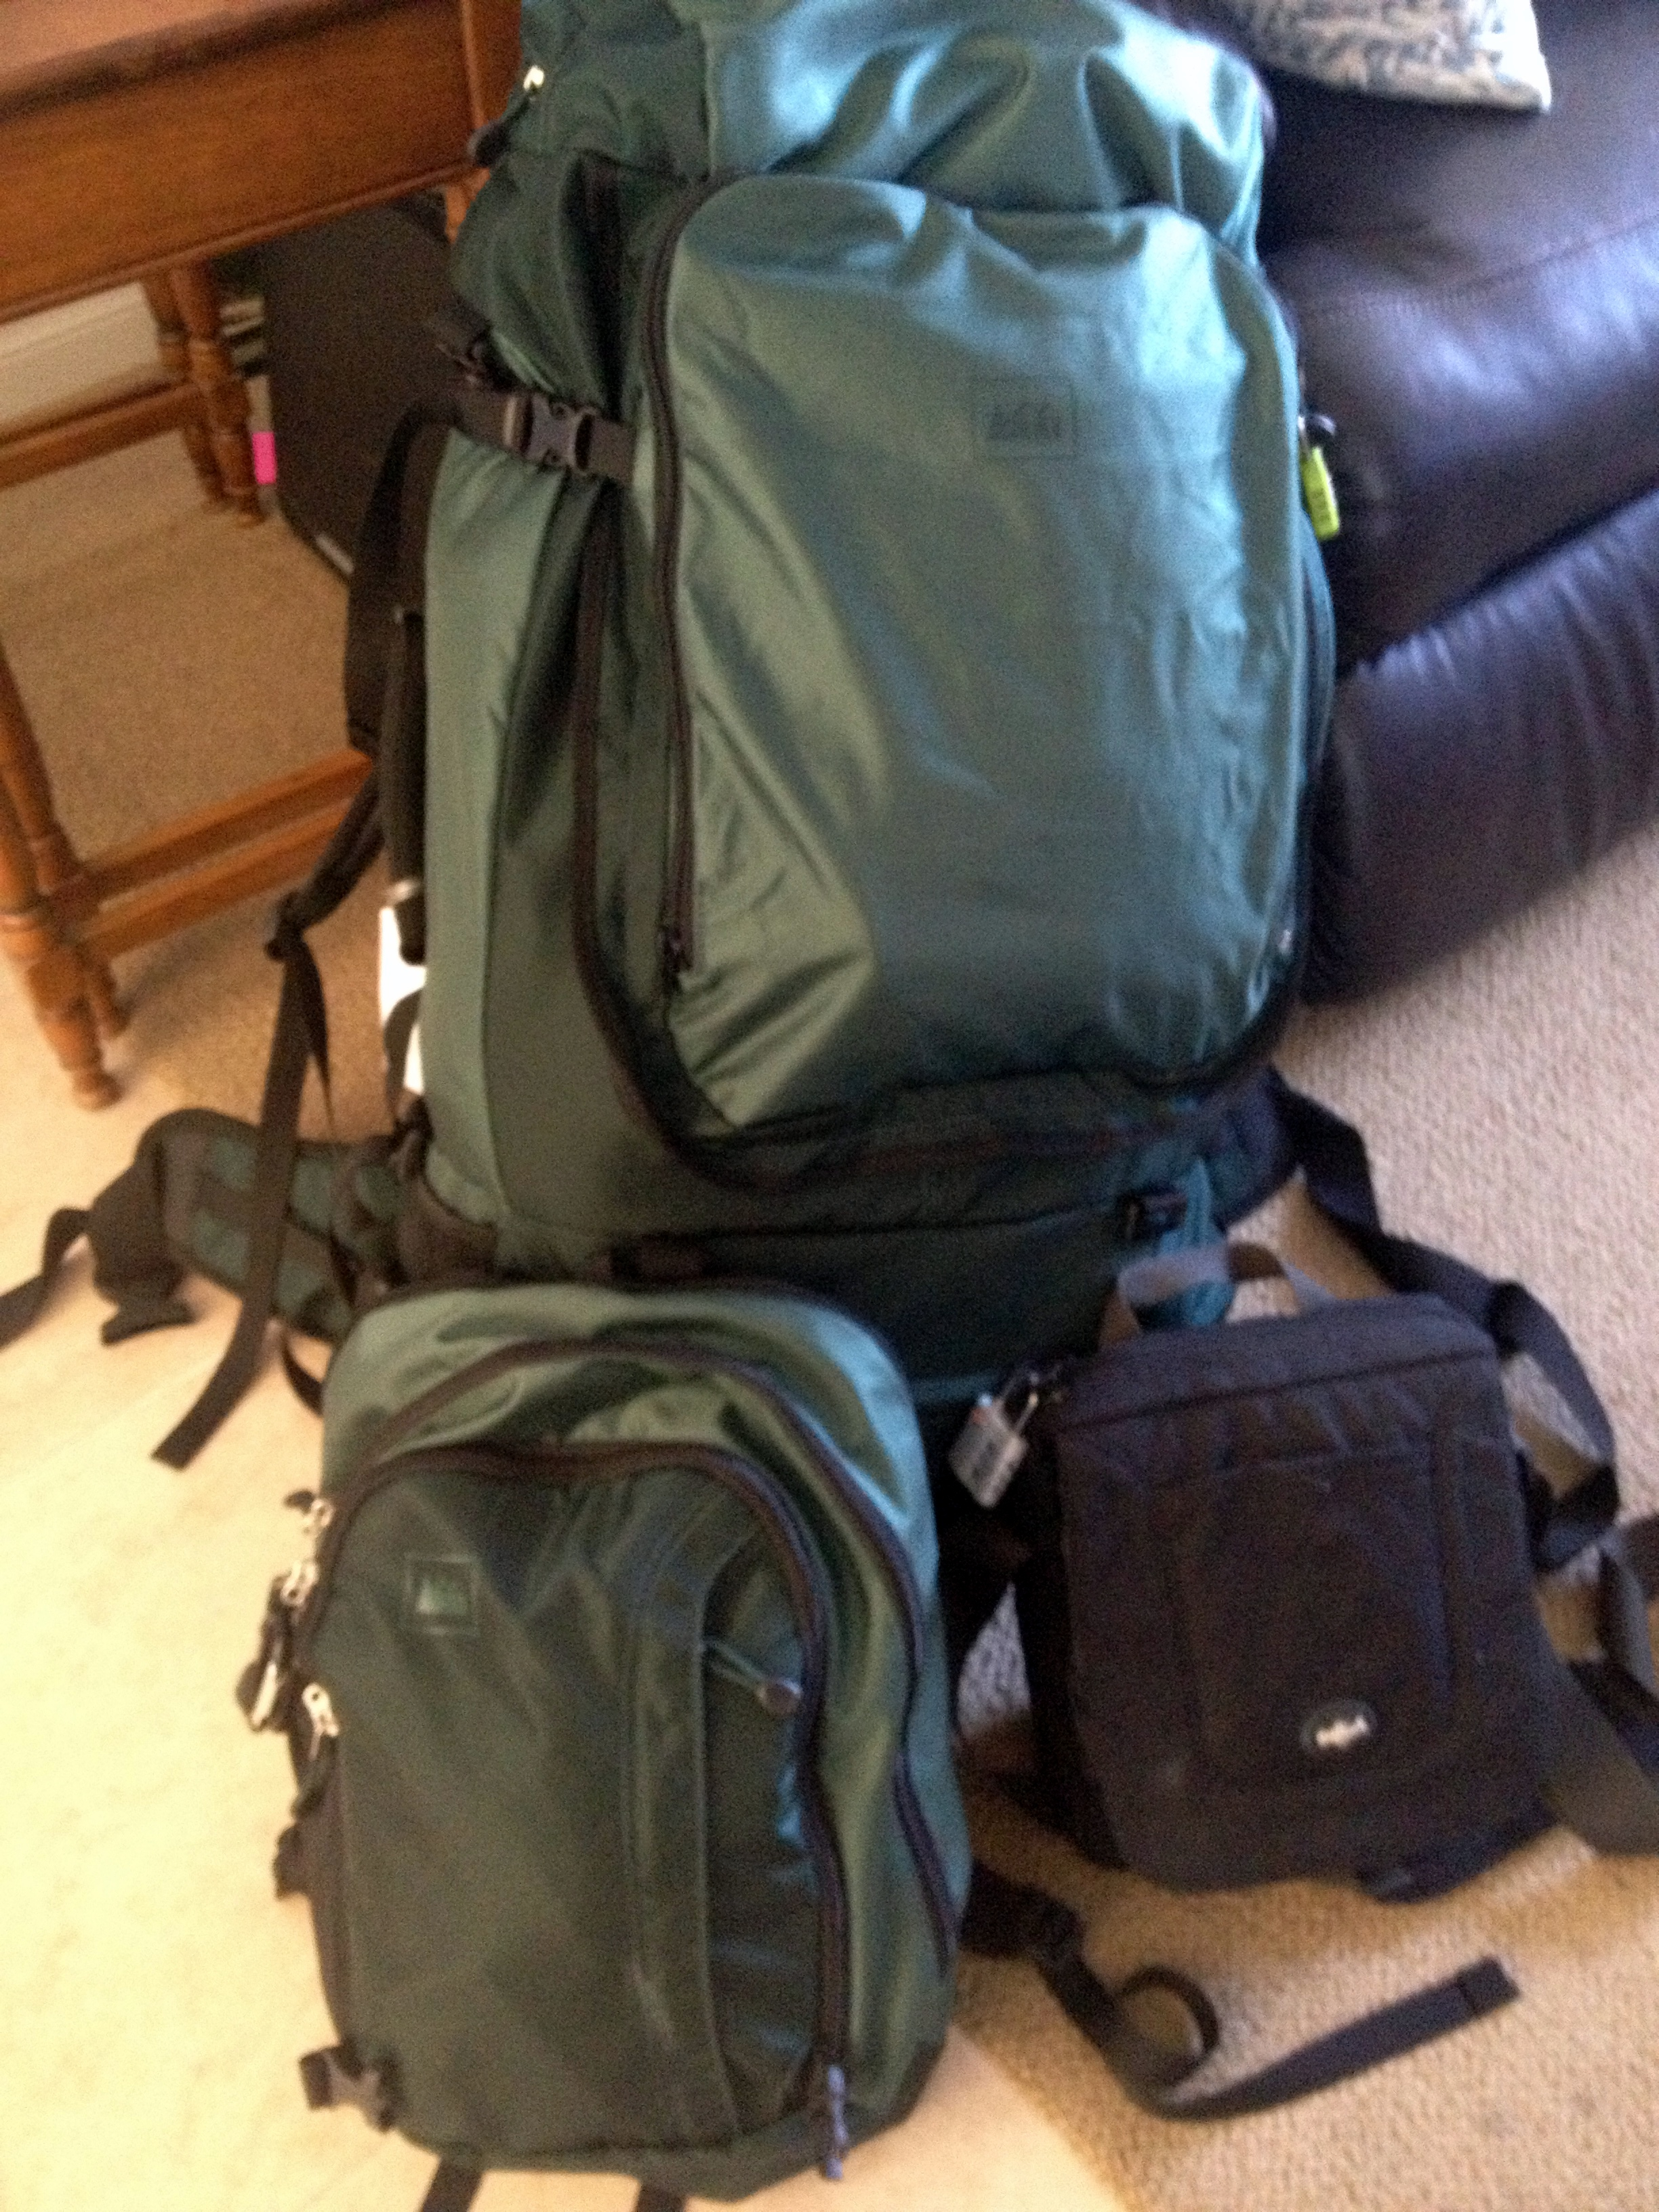 The best backpack for long-term travel